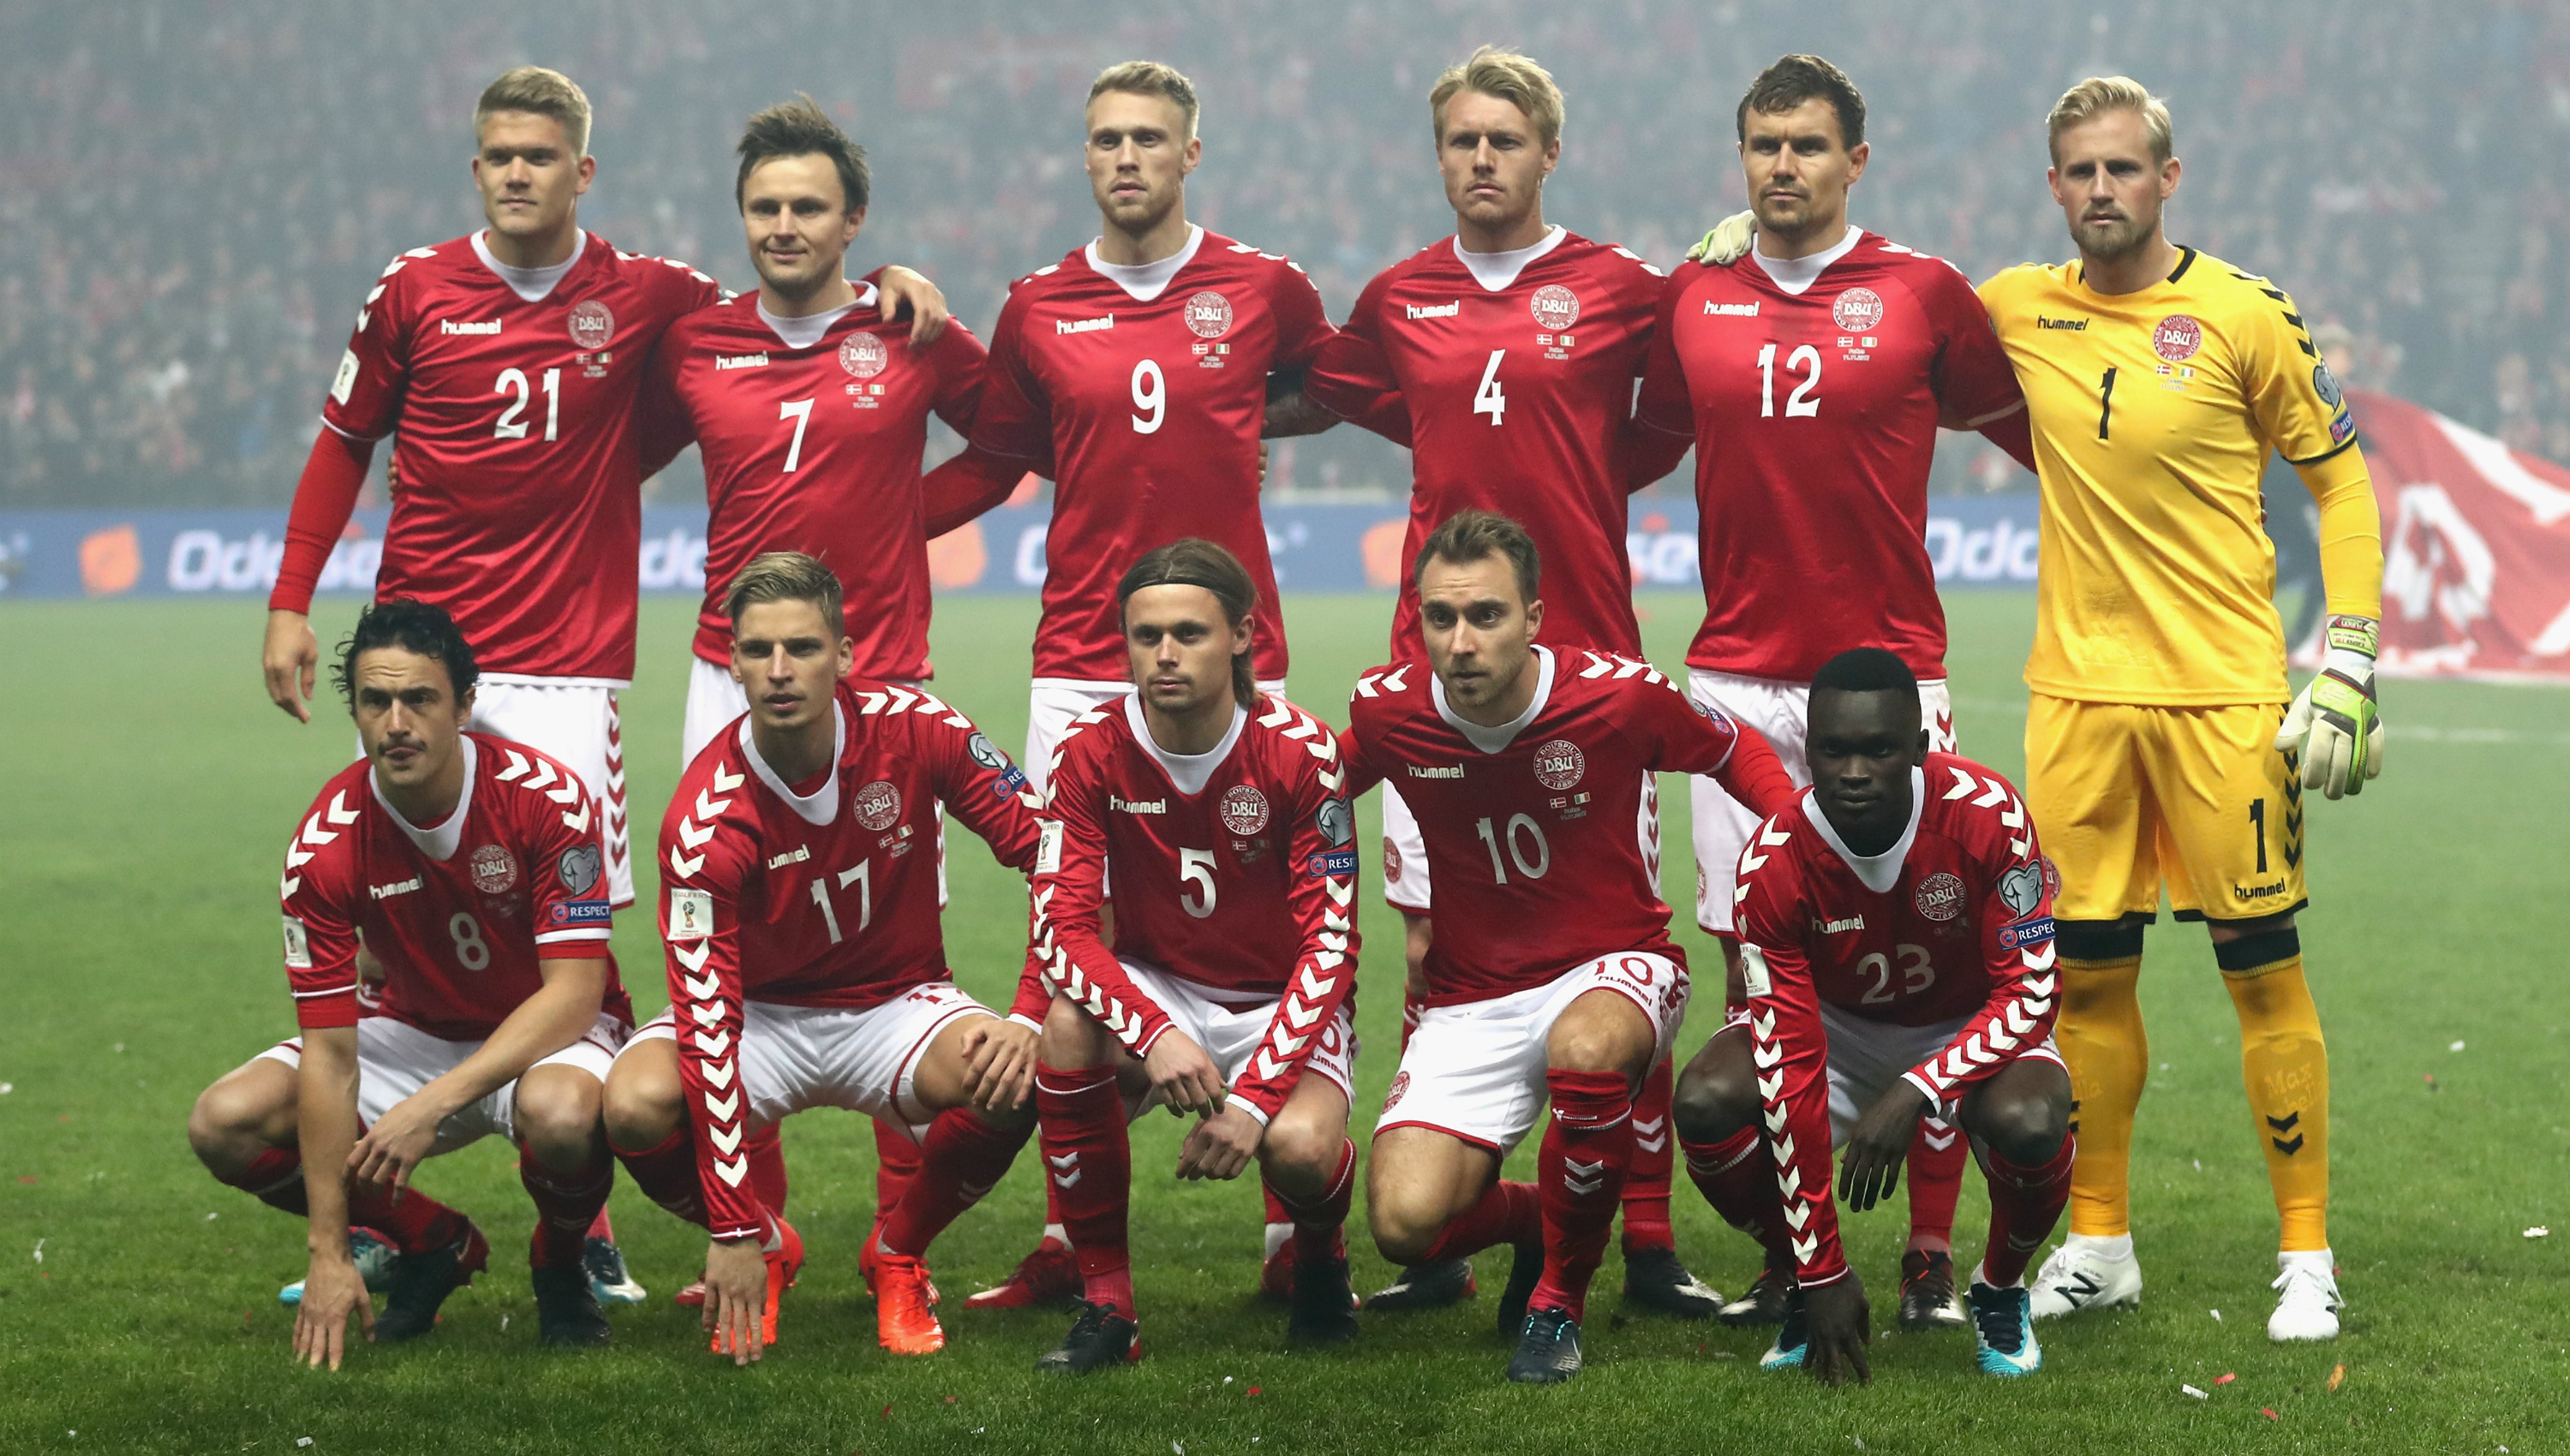 1d94645c9 Confirmed: Denmark name 35-man extended FIFA World Cup squad | Socceroos